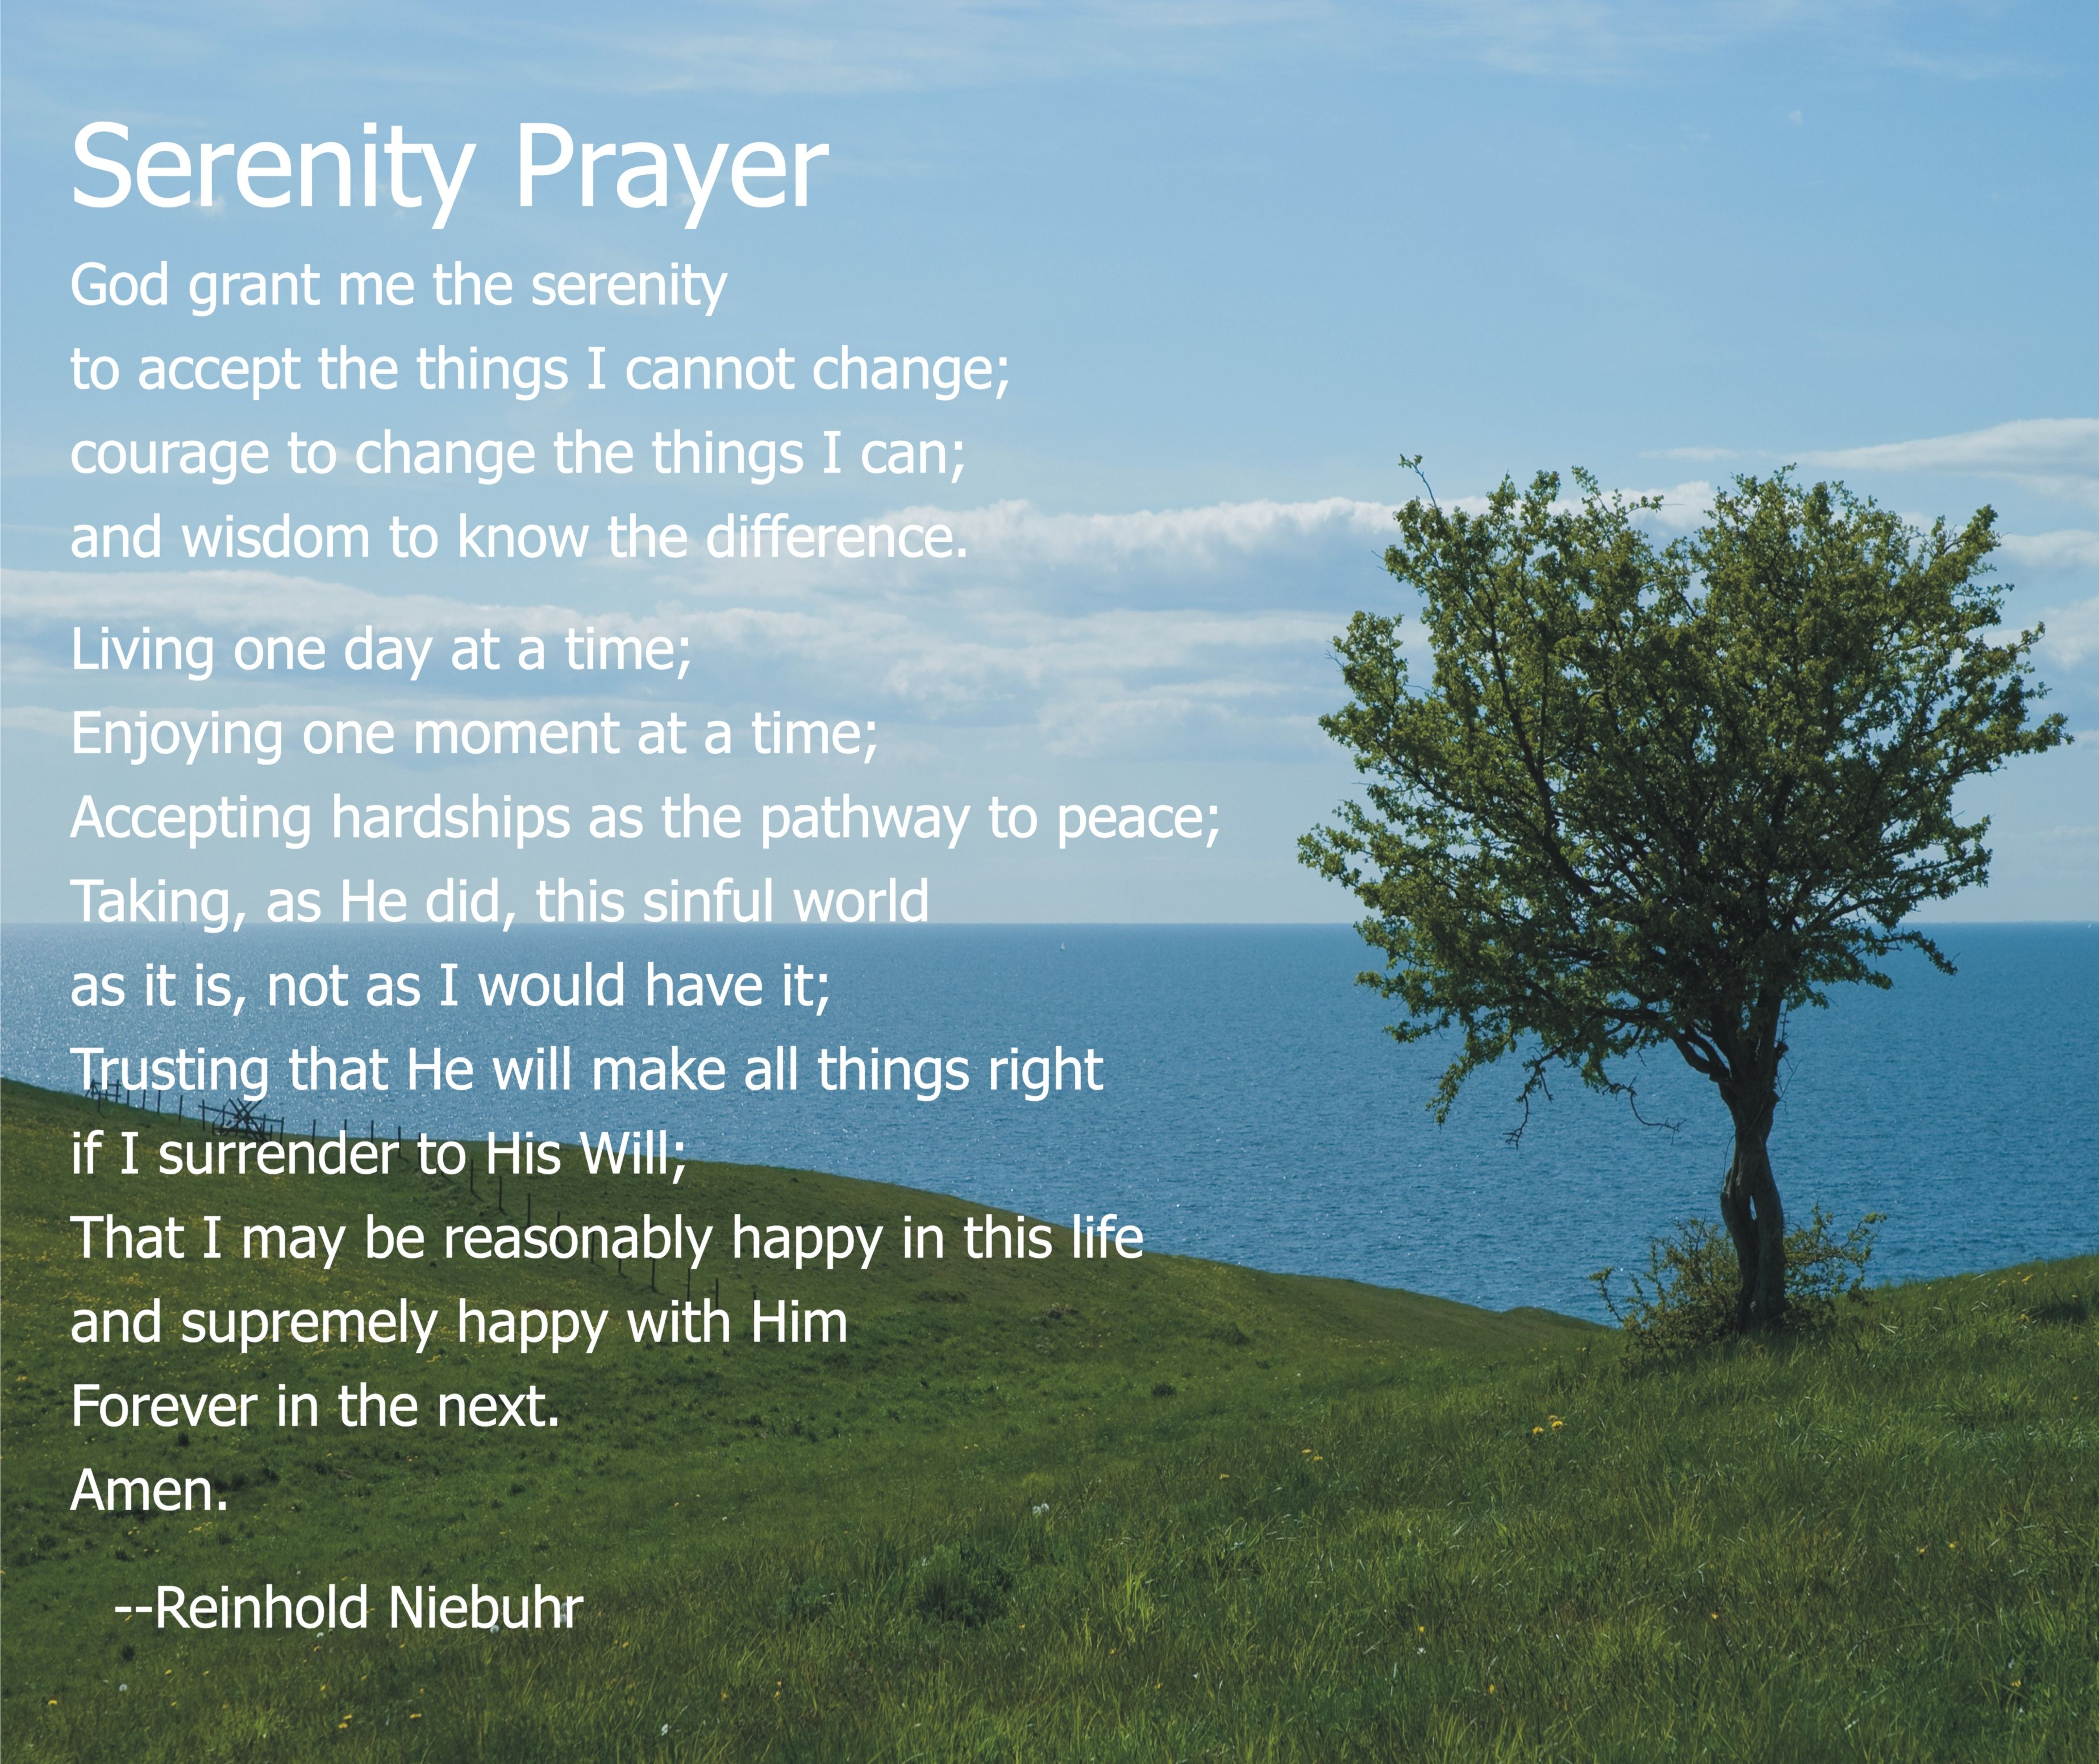 Serenity Prayer Including The 2nd Verse Living One Day